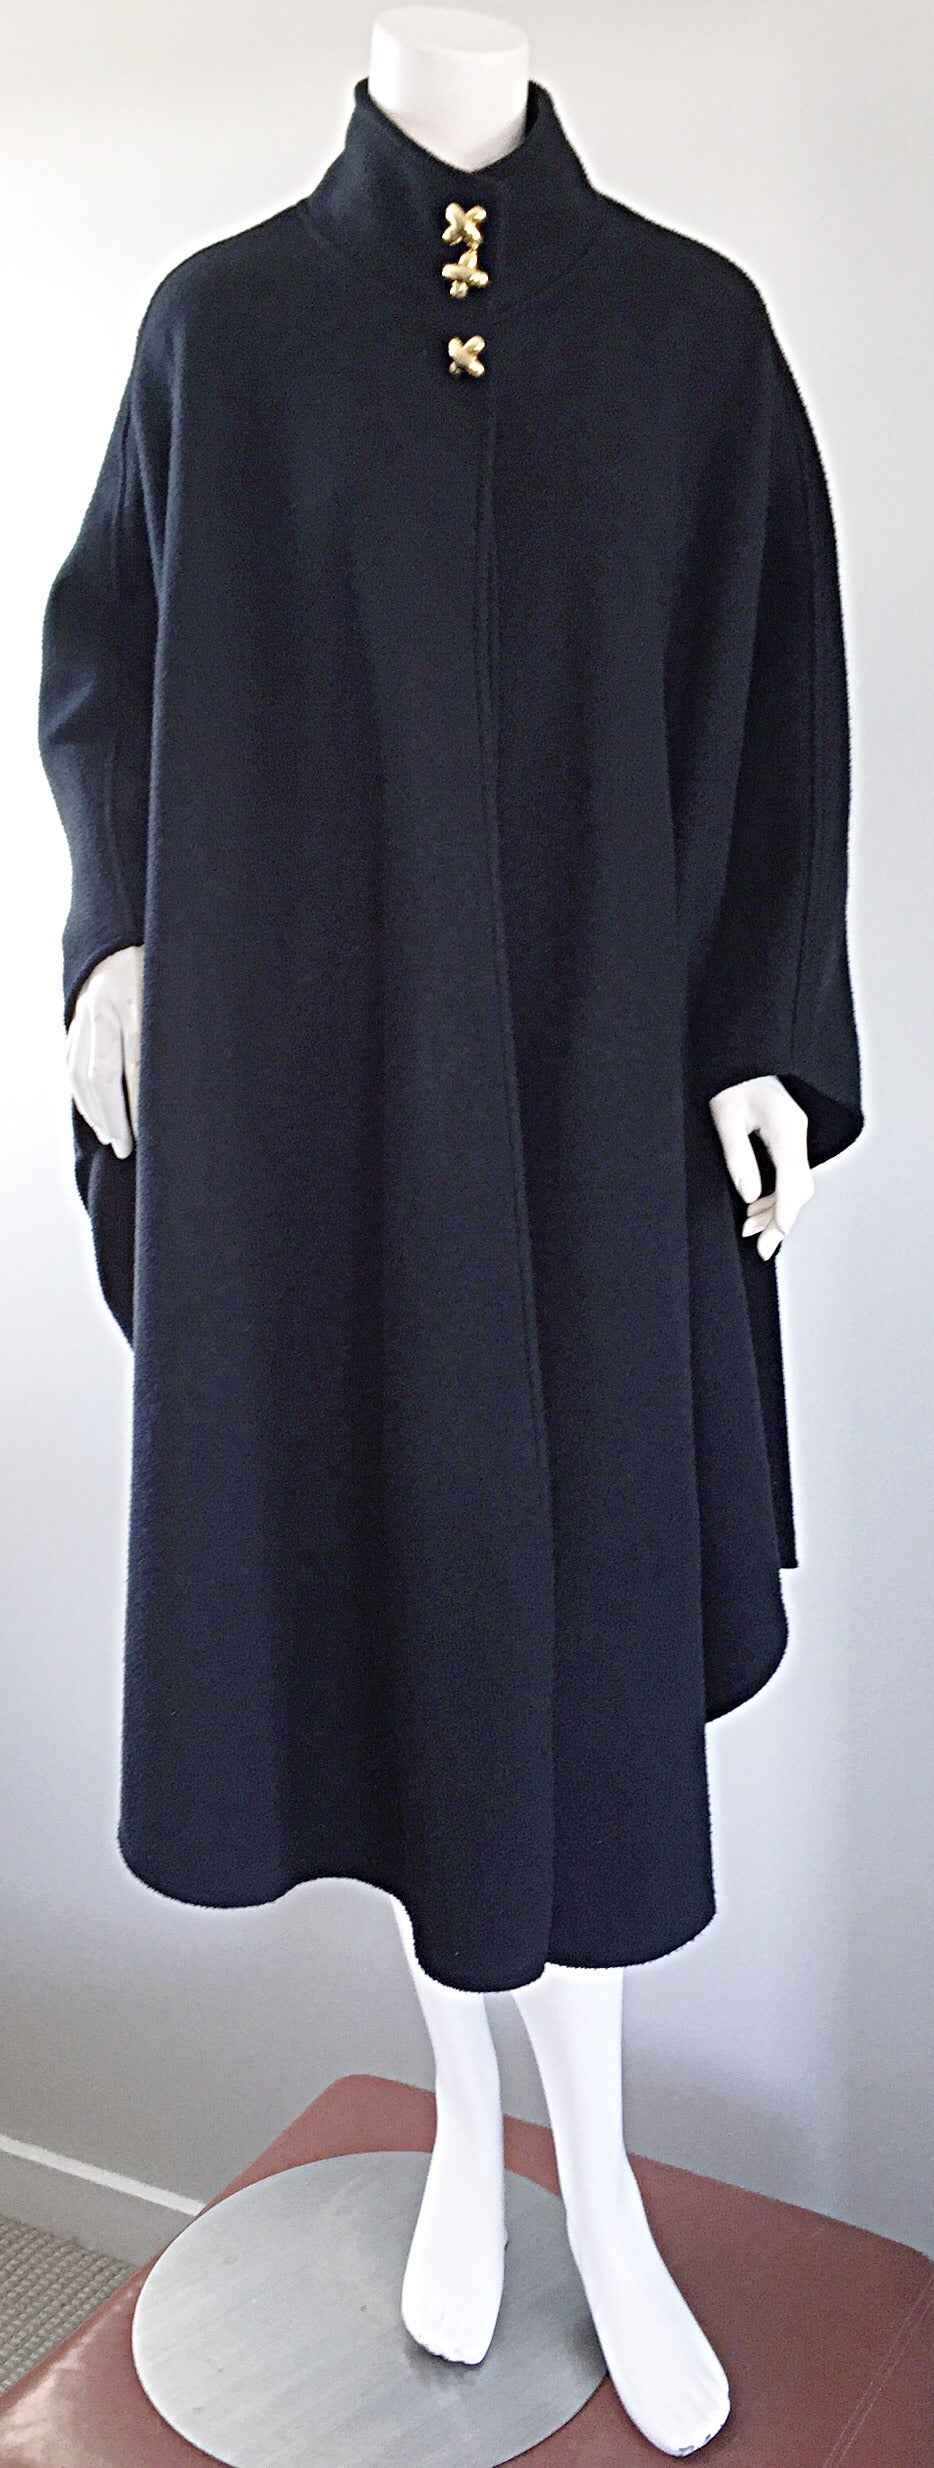 "Fantastic vintage Lord & Taylor black fleece cape! Great shape, with gold ""X"" buttons, that resemble Paloma Picasso. The perfect winter staple that is so easy to layer, and can easily be worn with jeans or a dress. In great condition. Will fit size"